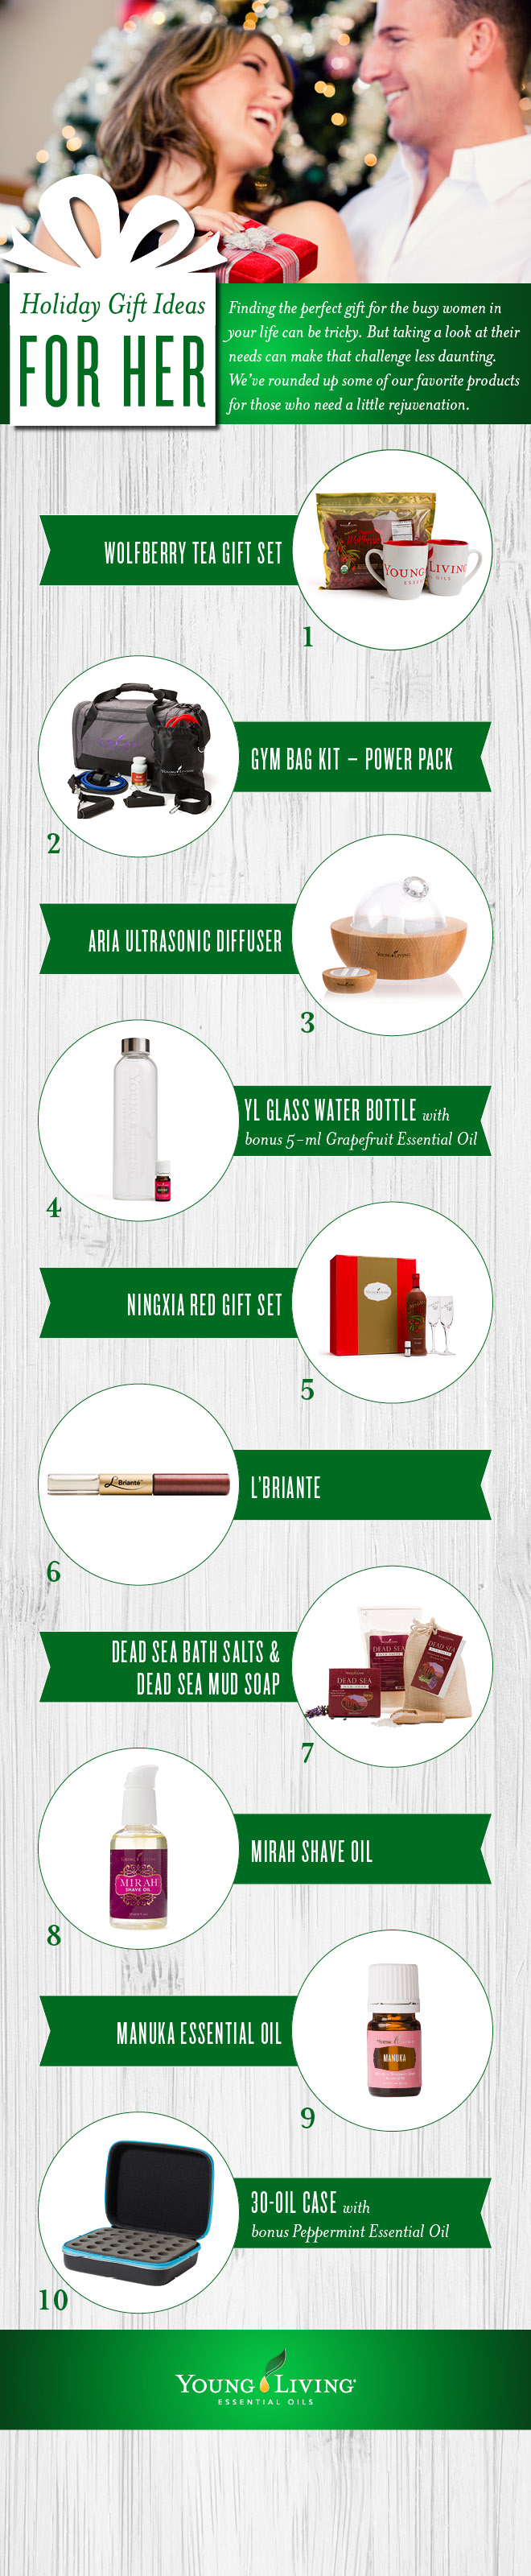 Gifts For Her Holiday Guide | Young Living Blog